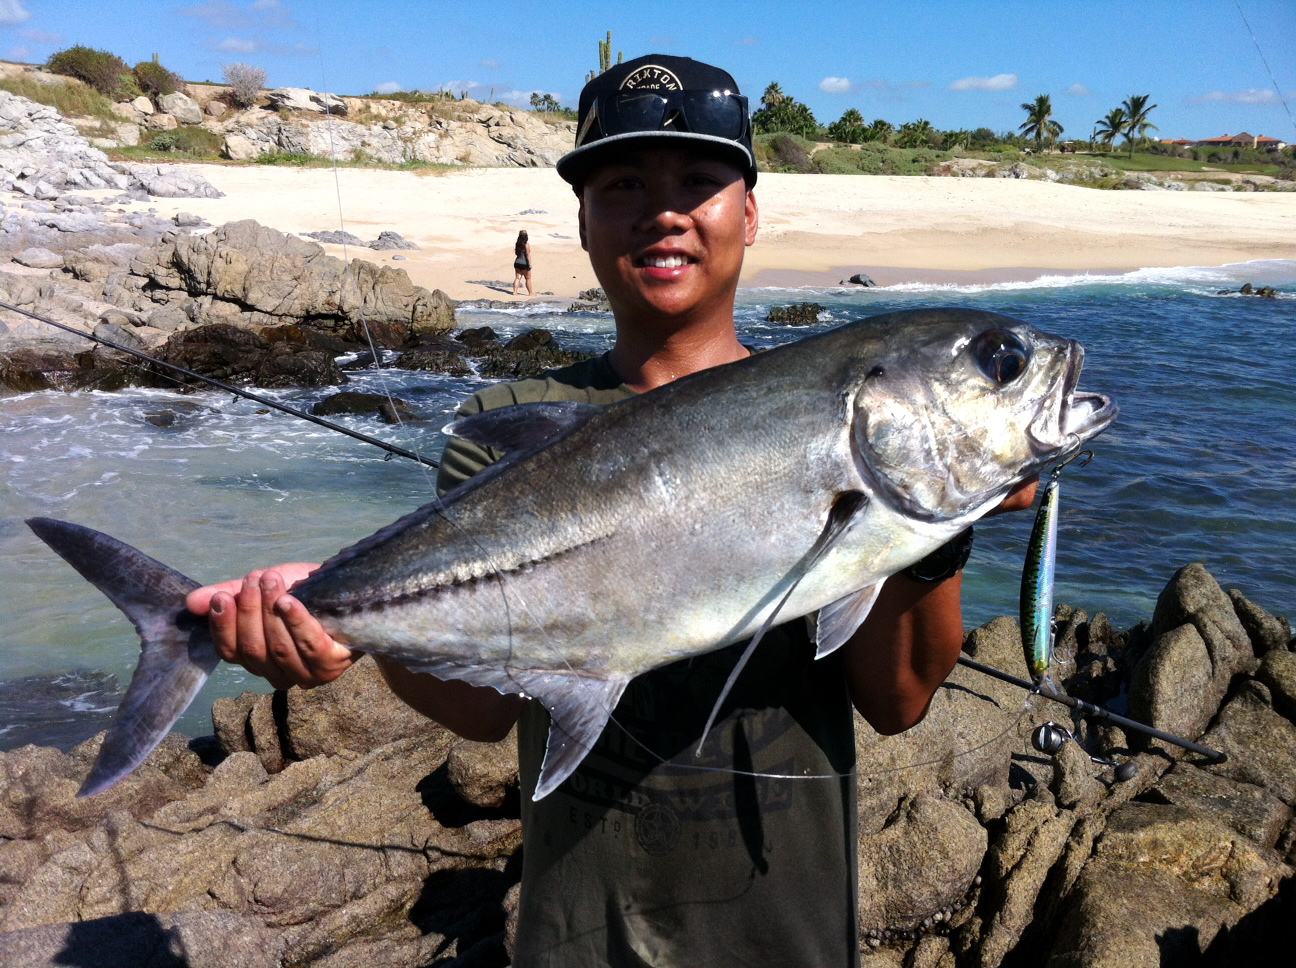 Socal fish n tips cabo san lucas surf fishing trip for Fishing cabo san lucas